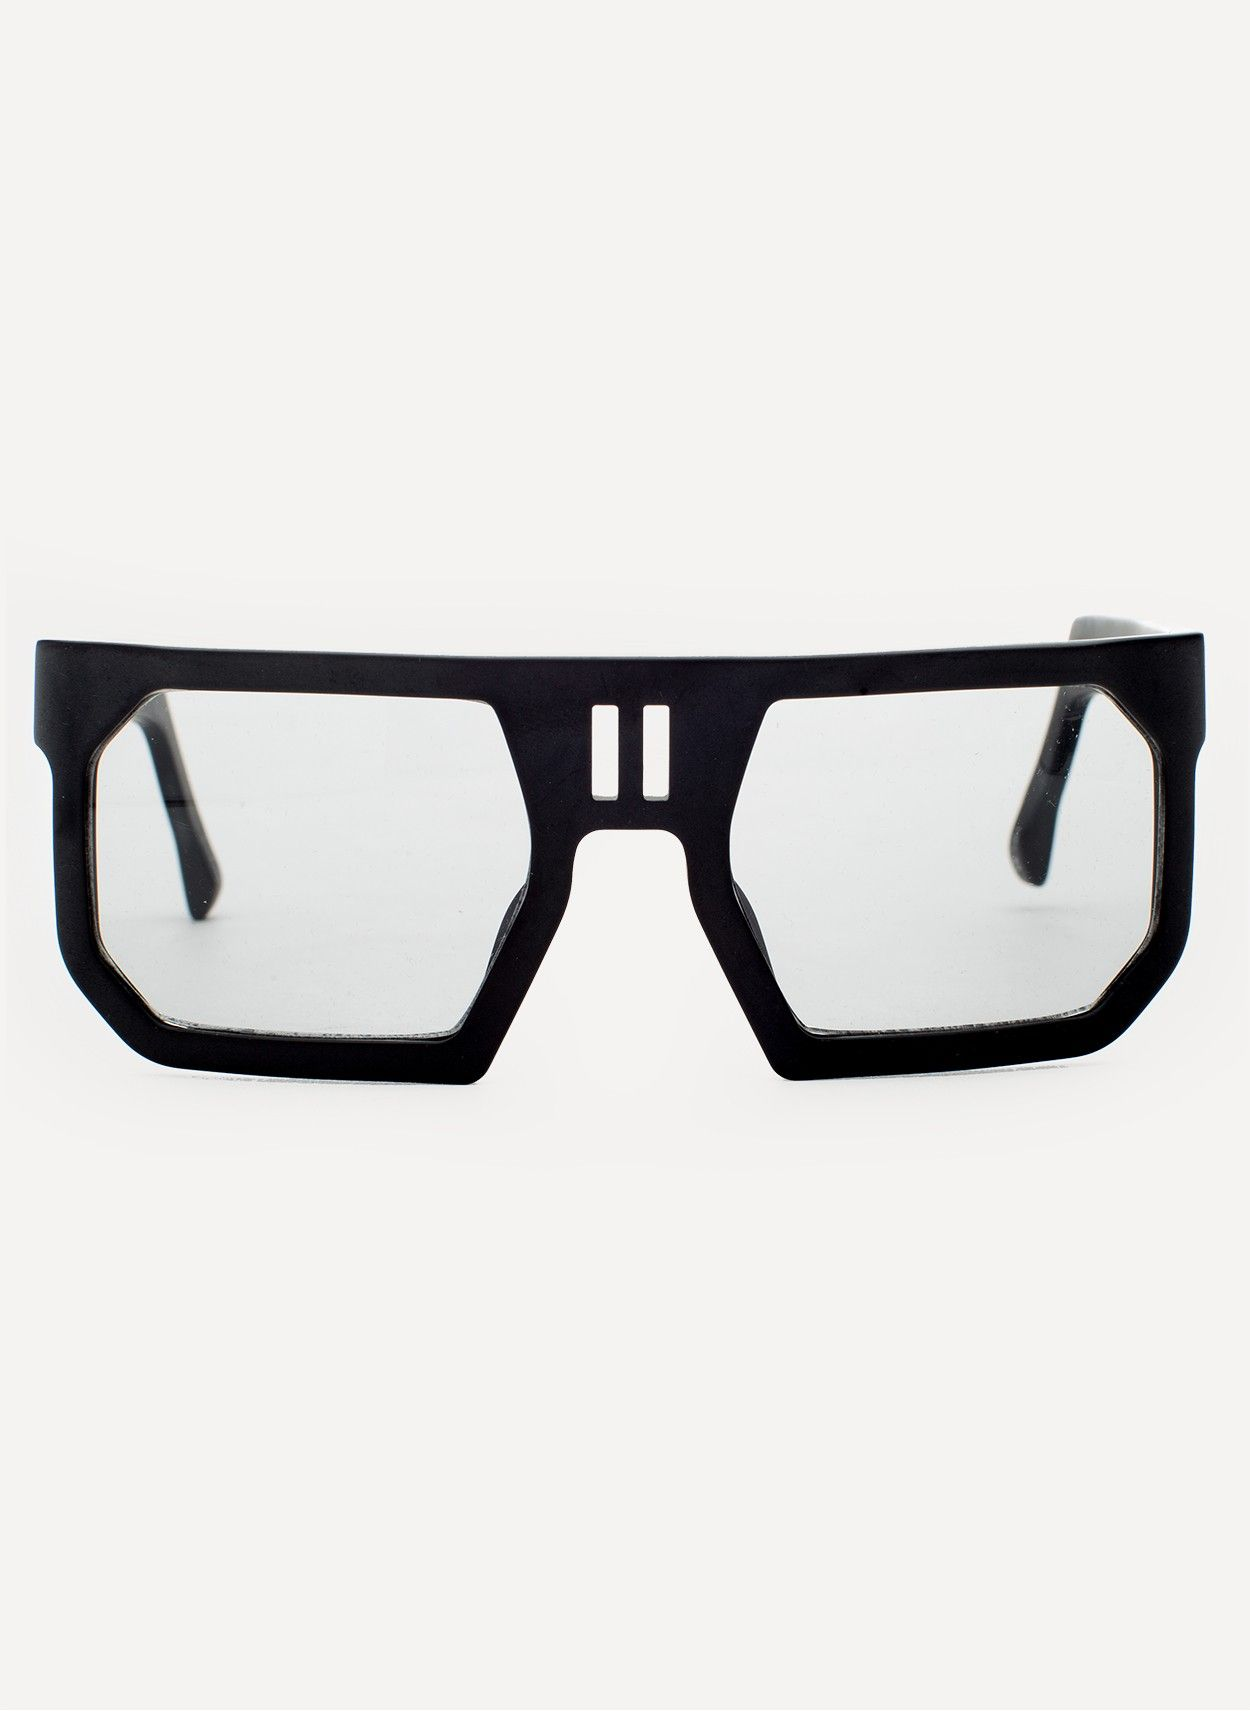 Boris Bidjan Saberi Rectangular Sunglasses Frame, MATTE BLACK; Lense, GREY Linda Farrow PROJECTS Collaboration Spring and Summer 2013 MATTE BLACK